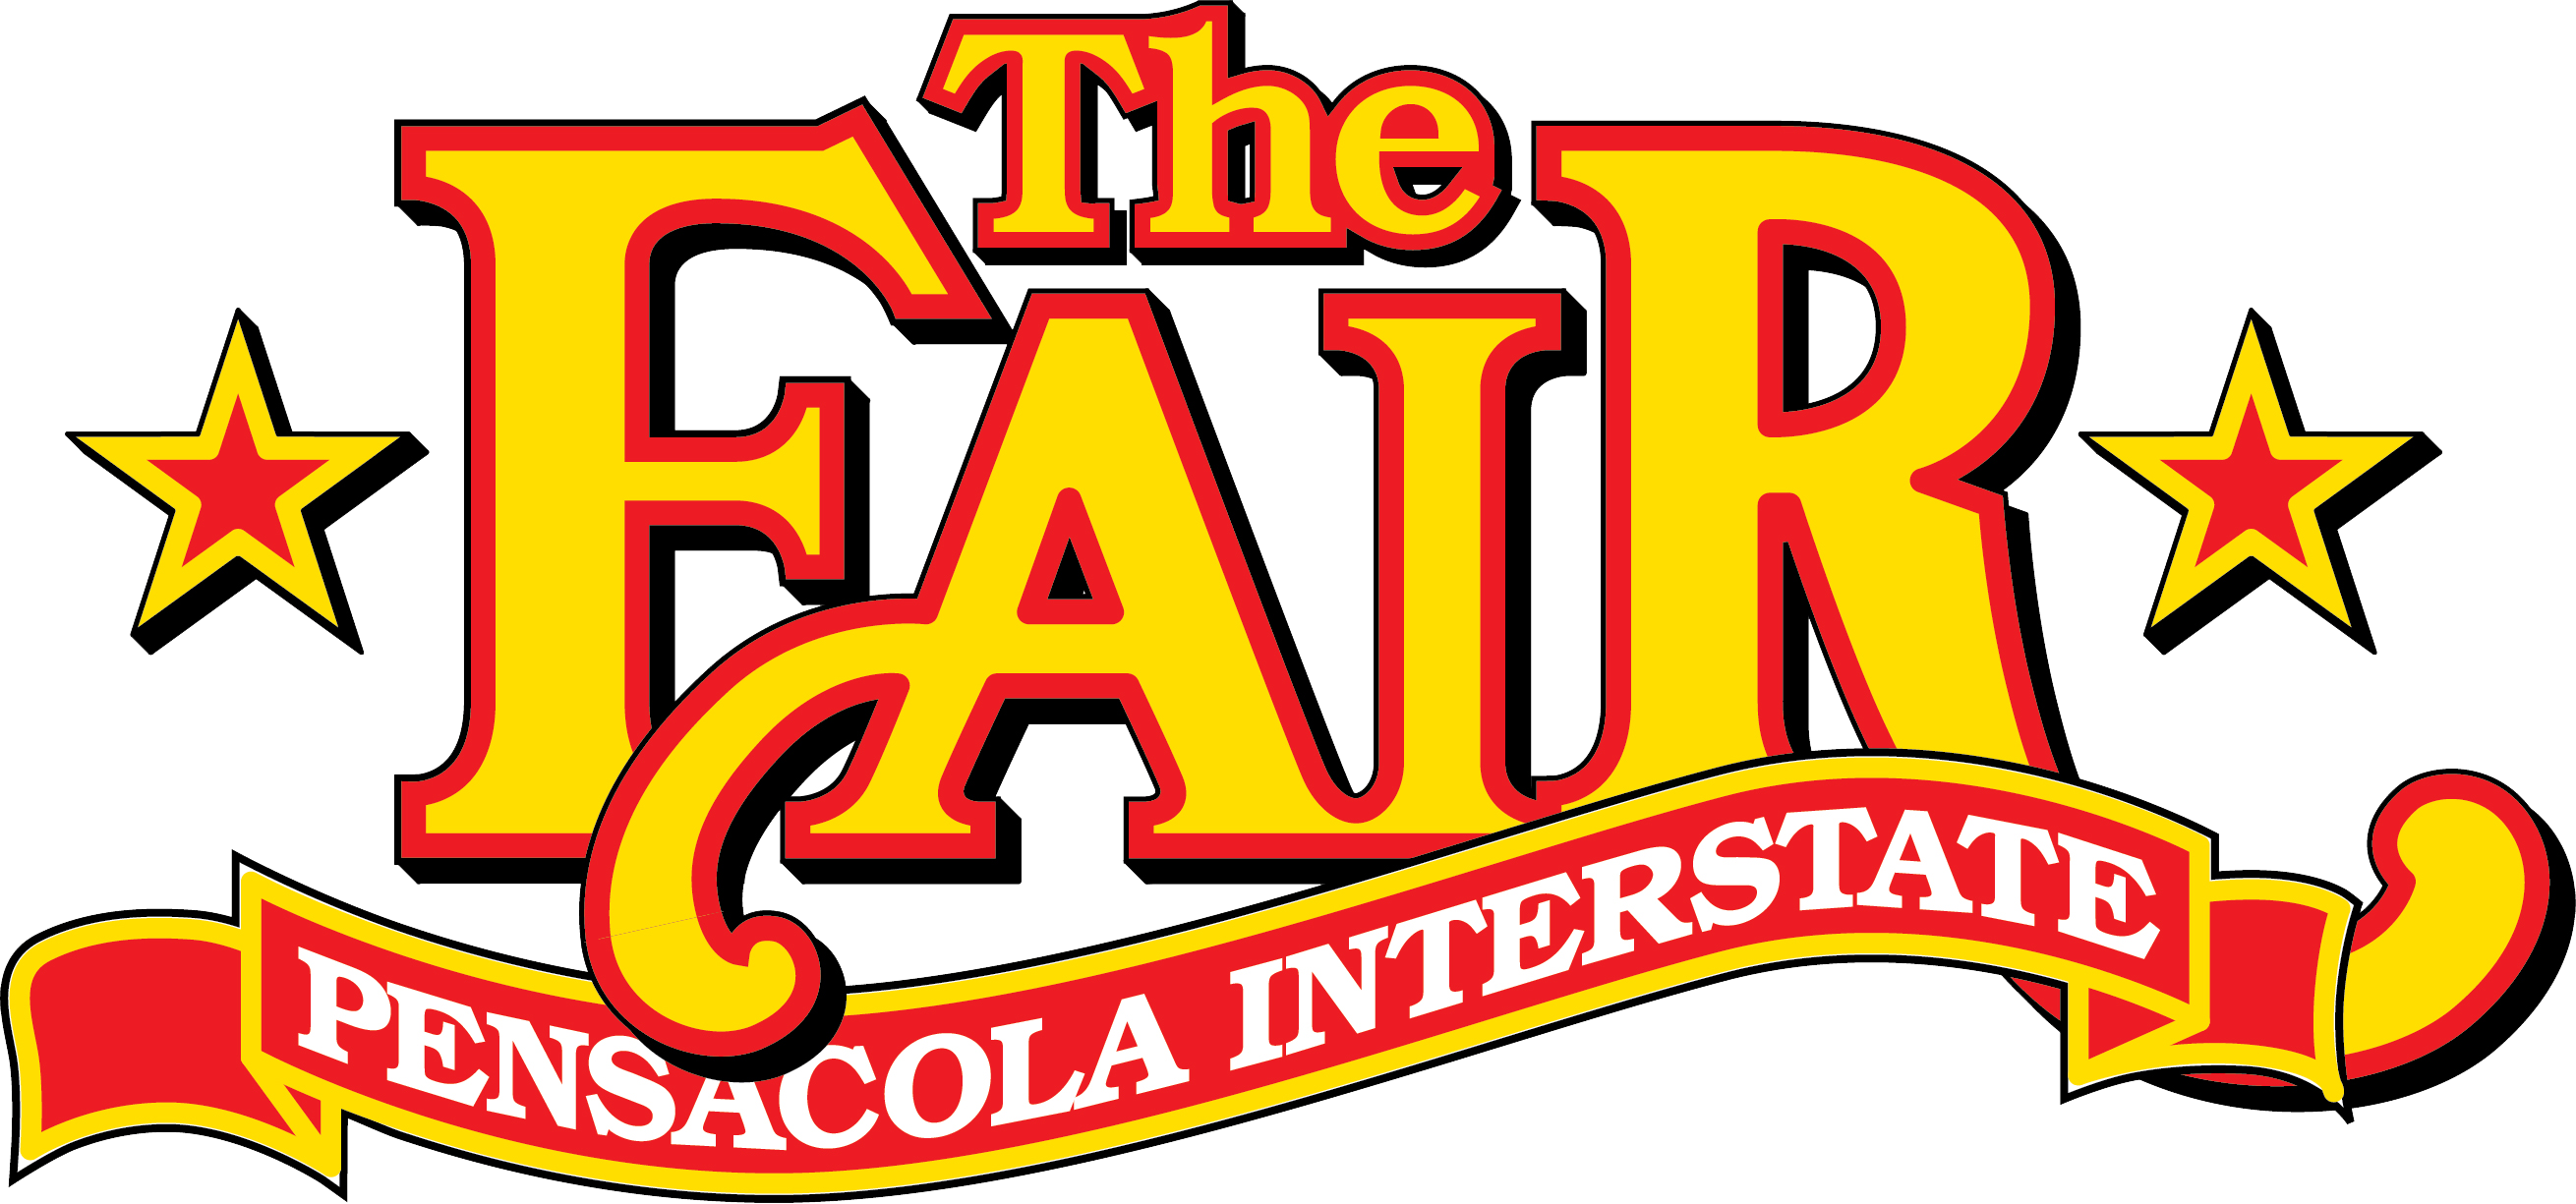 FairLogo 18 Red thick6.png